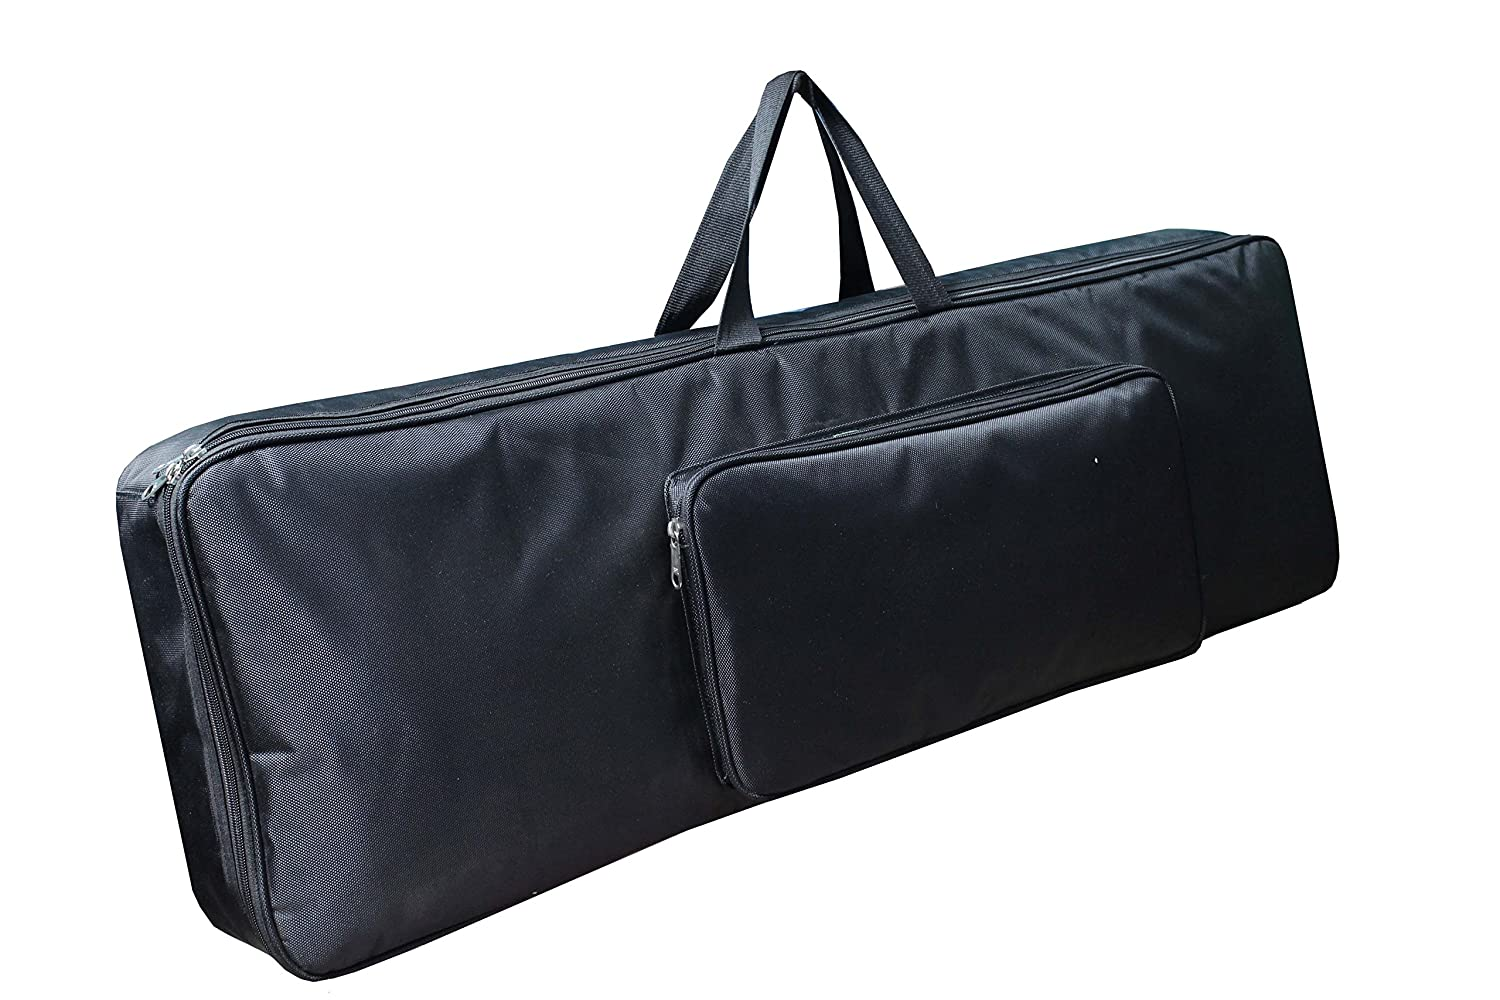 Baritone Distribution Case For Yamaha DGX-660 88-Keys Keyboard Heavy Padded Full Black Gig Bag (Bag Size 58X20X7 Inch) Novation MiniNova 37